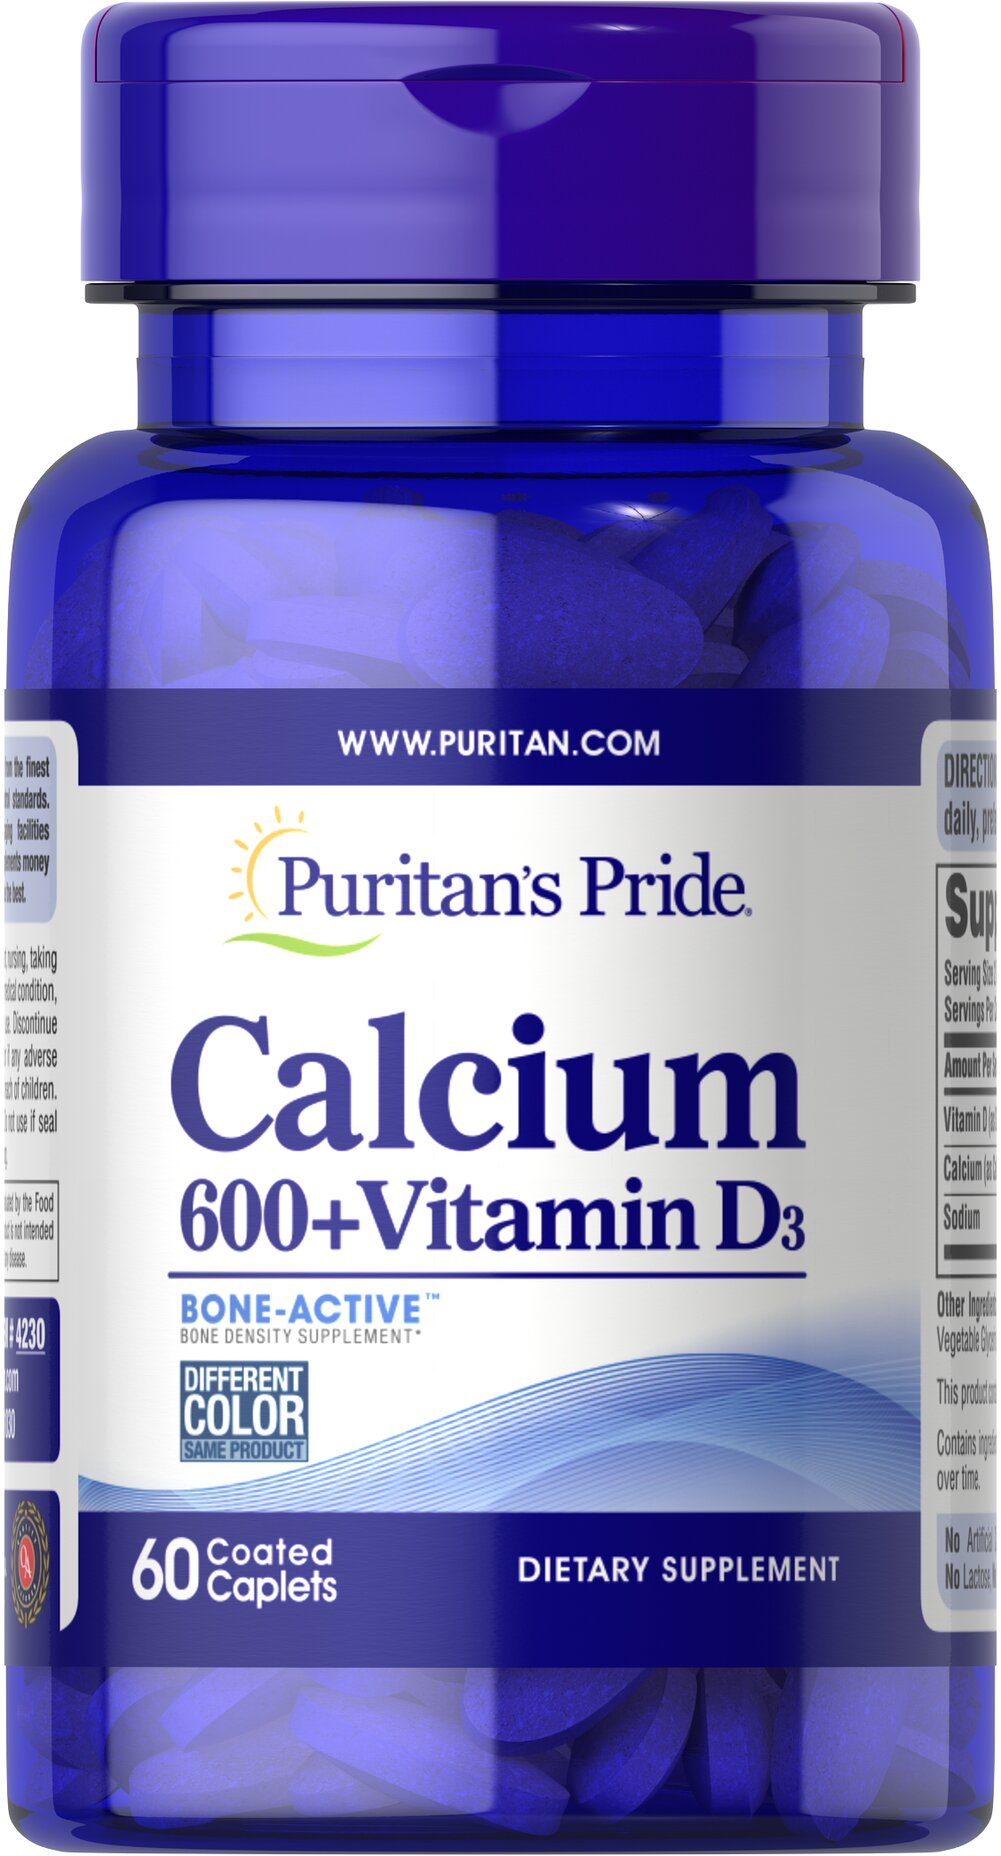 Calcium Carbonate 600 mg + Vitamin D 250 IU <p>Calcium is the primary mineral responsible for strong bones.** The body also uses Calcium for proper muscle contraction and nerve function.**  Just two tablets of our High Potency Calcium 600 + Vitamin D give you the protection of 120% of the Daily Value for Calcium. Each tablet contains 600 mg Calcium and 125 I.U. Vitamin D. Adults can take one or two tablets daily.</p> 60 Caplets 600 mg